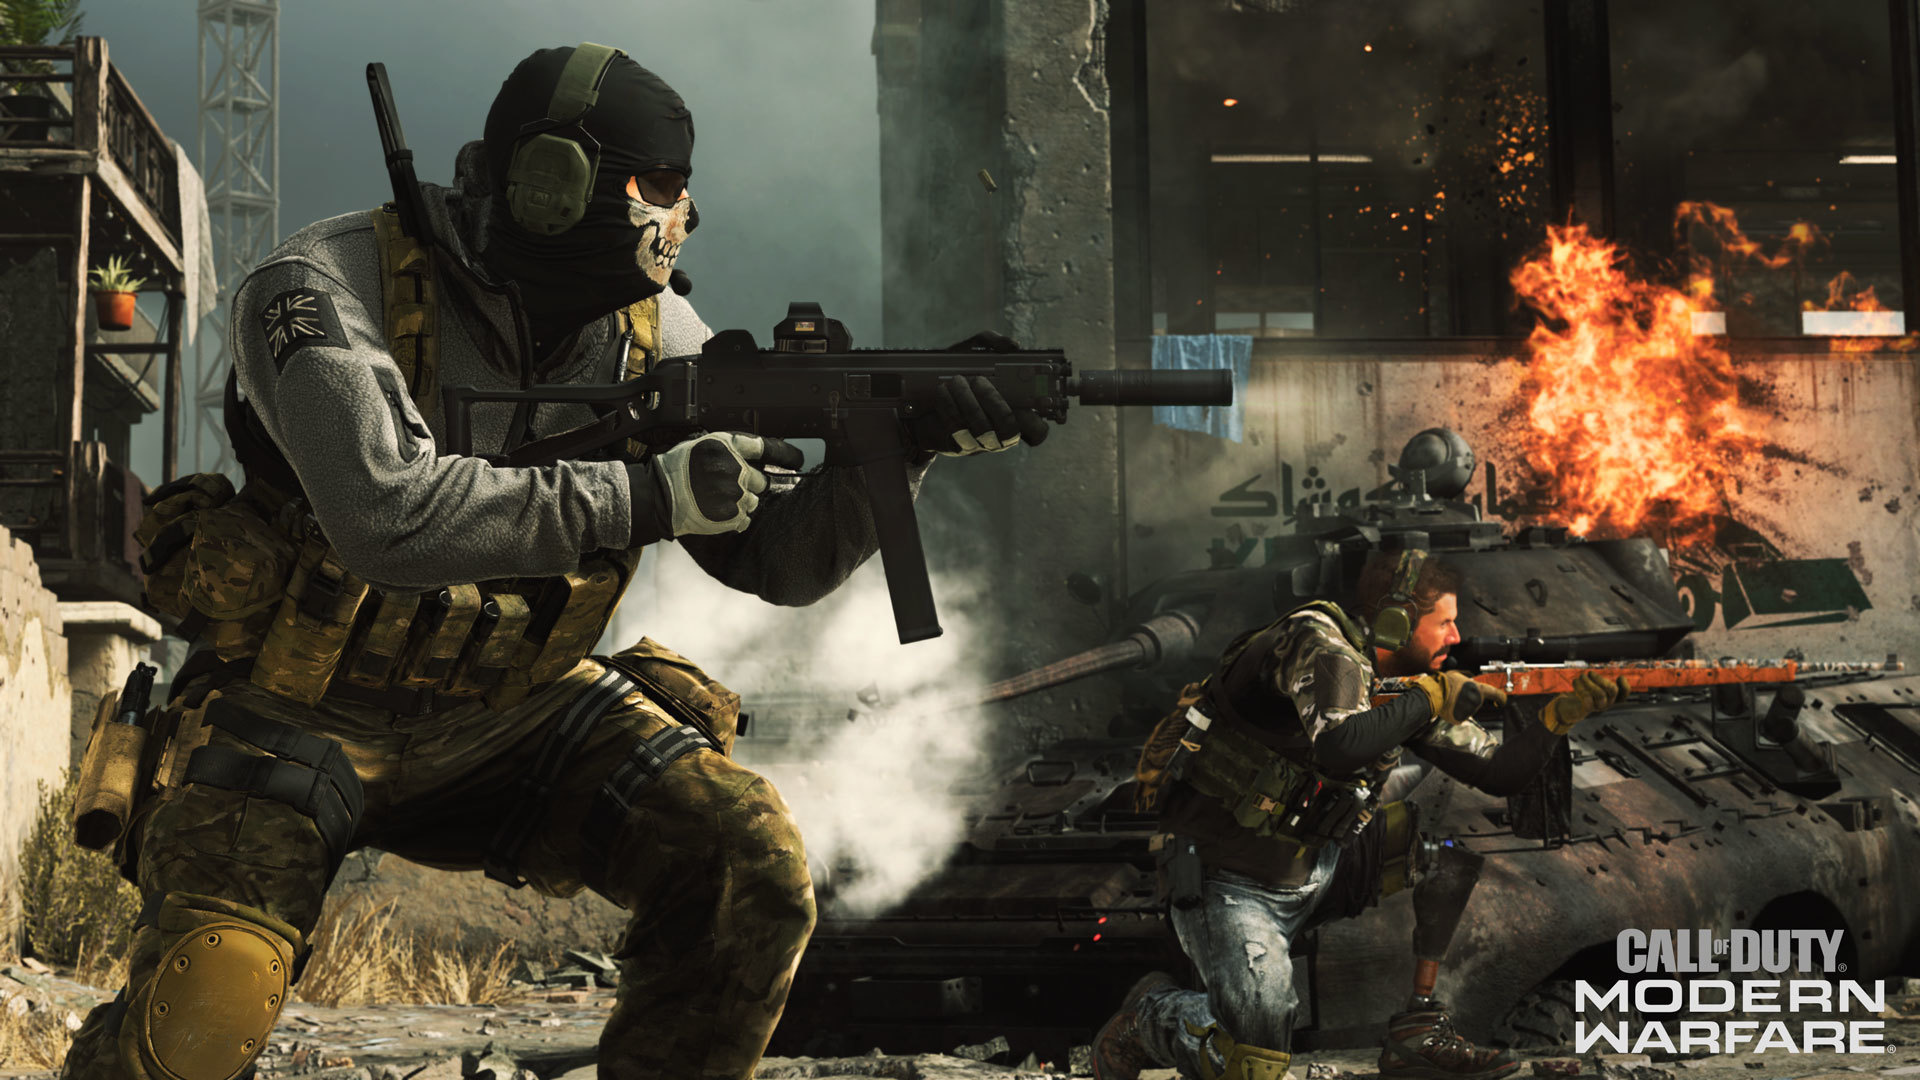 Call Of Duty Modern Warfare Install Size Nears 200gb With Next